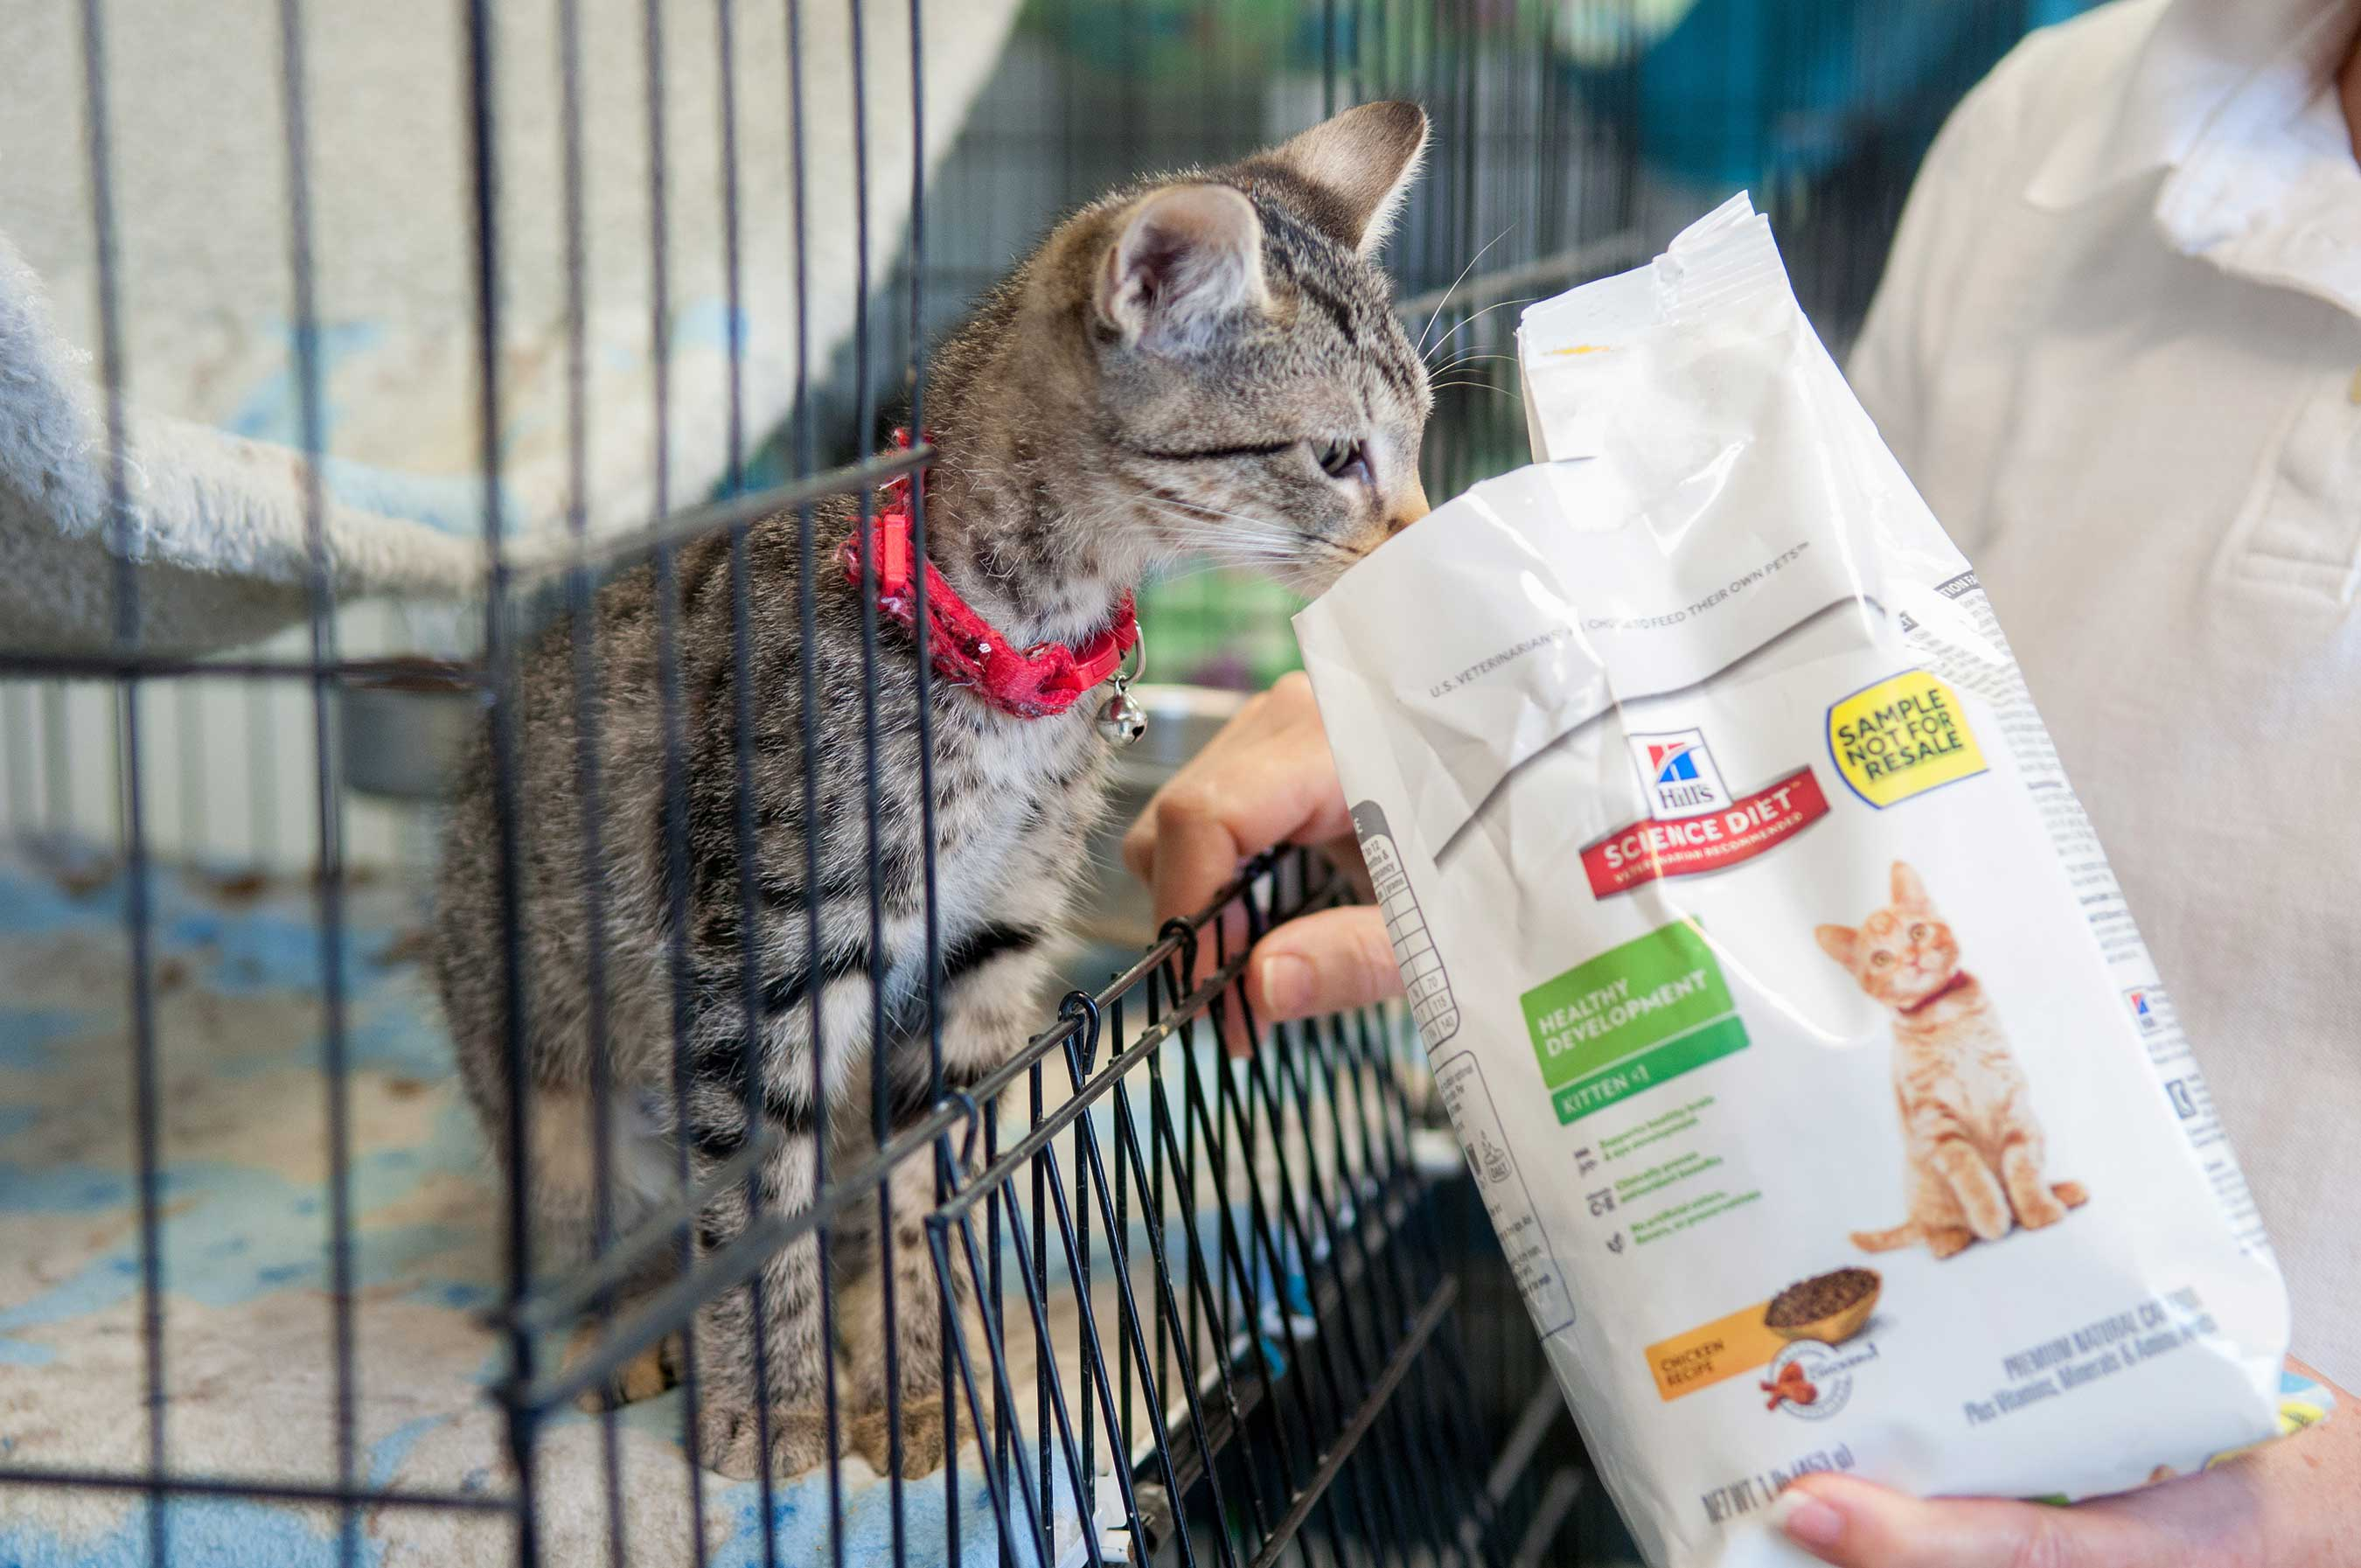 A rescued kitten in Louisiana is ready to eat cat food donated by the Hill's Food, Shelter & Love® program.